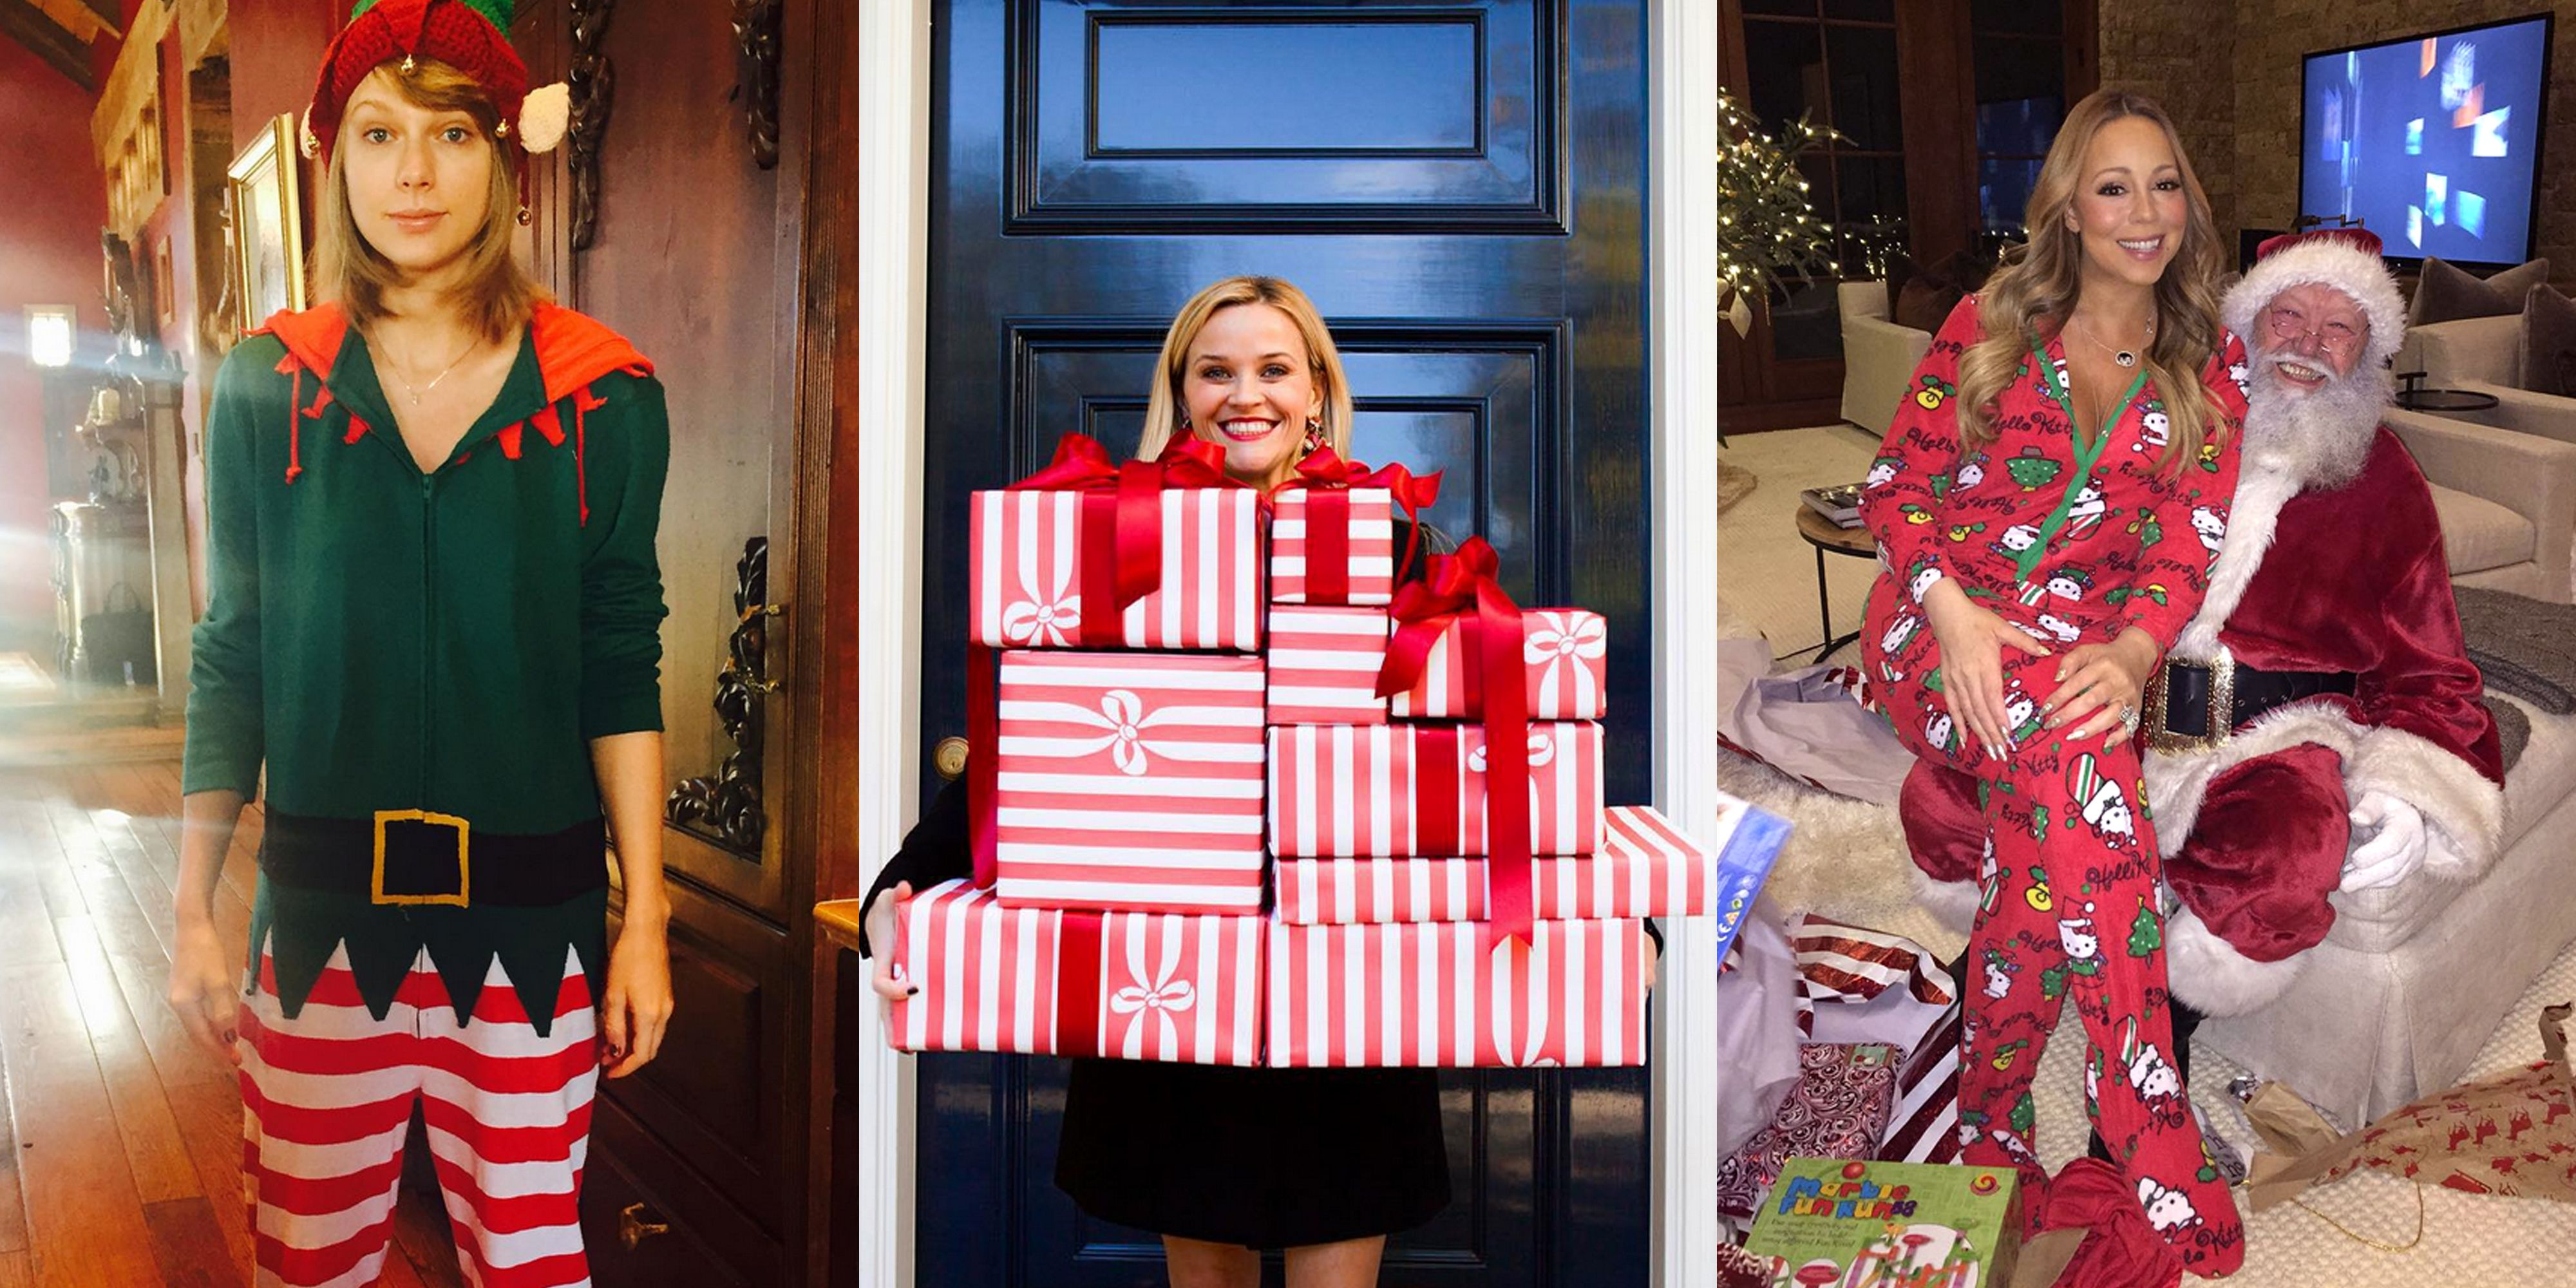 Celebrity Holiday Pics - Celebrities at Christmas Photos